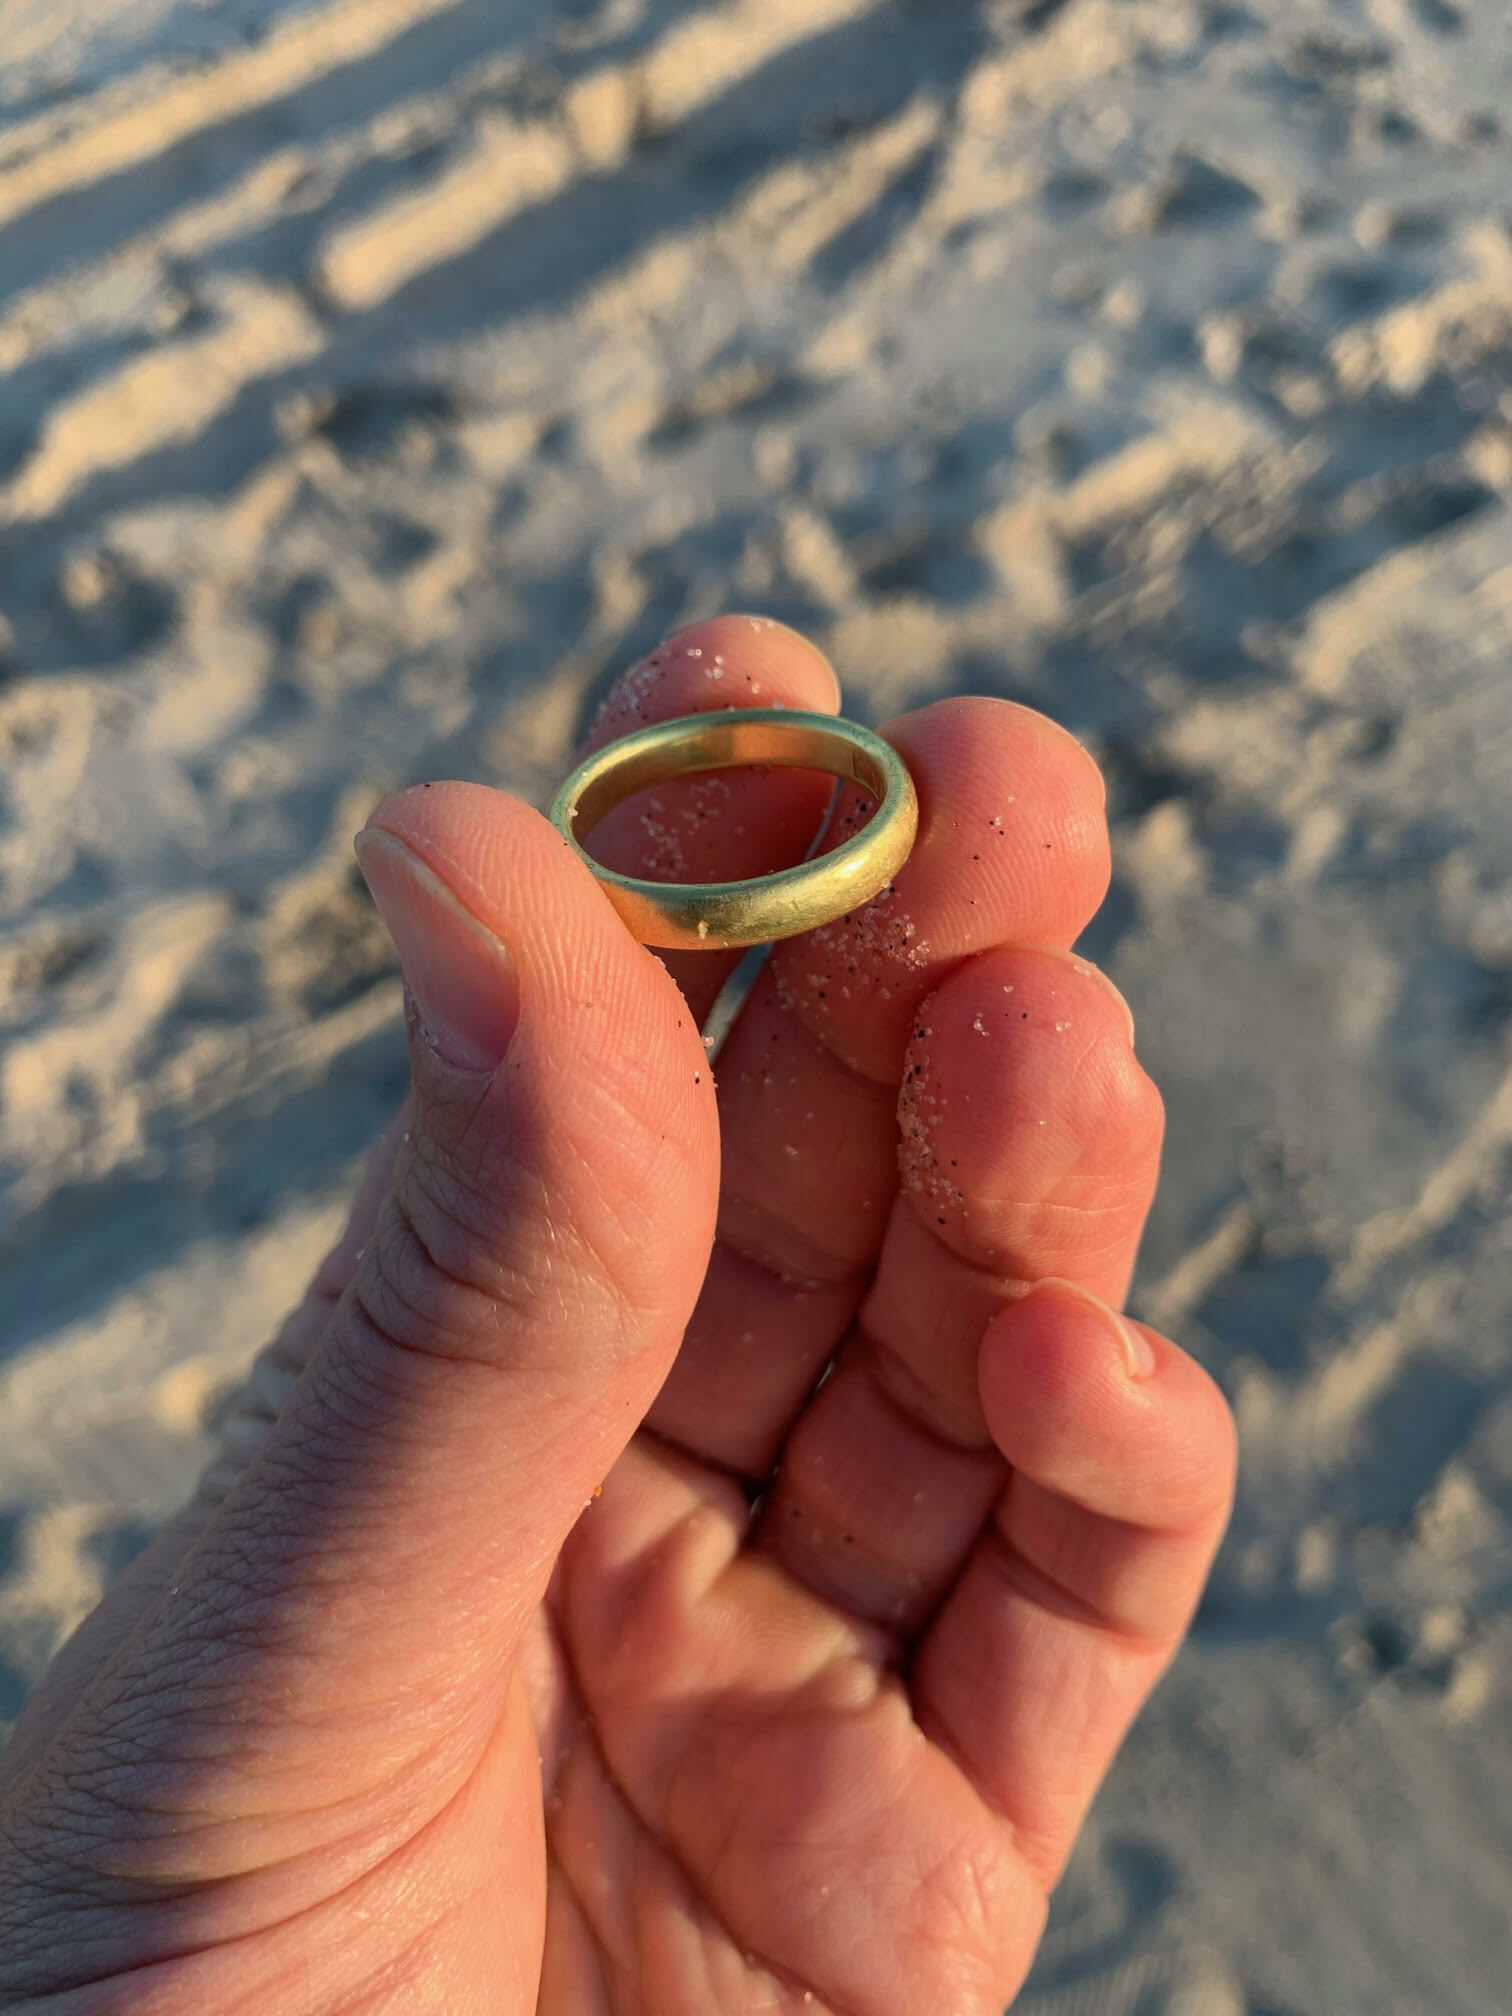 The found wedding ring.